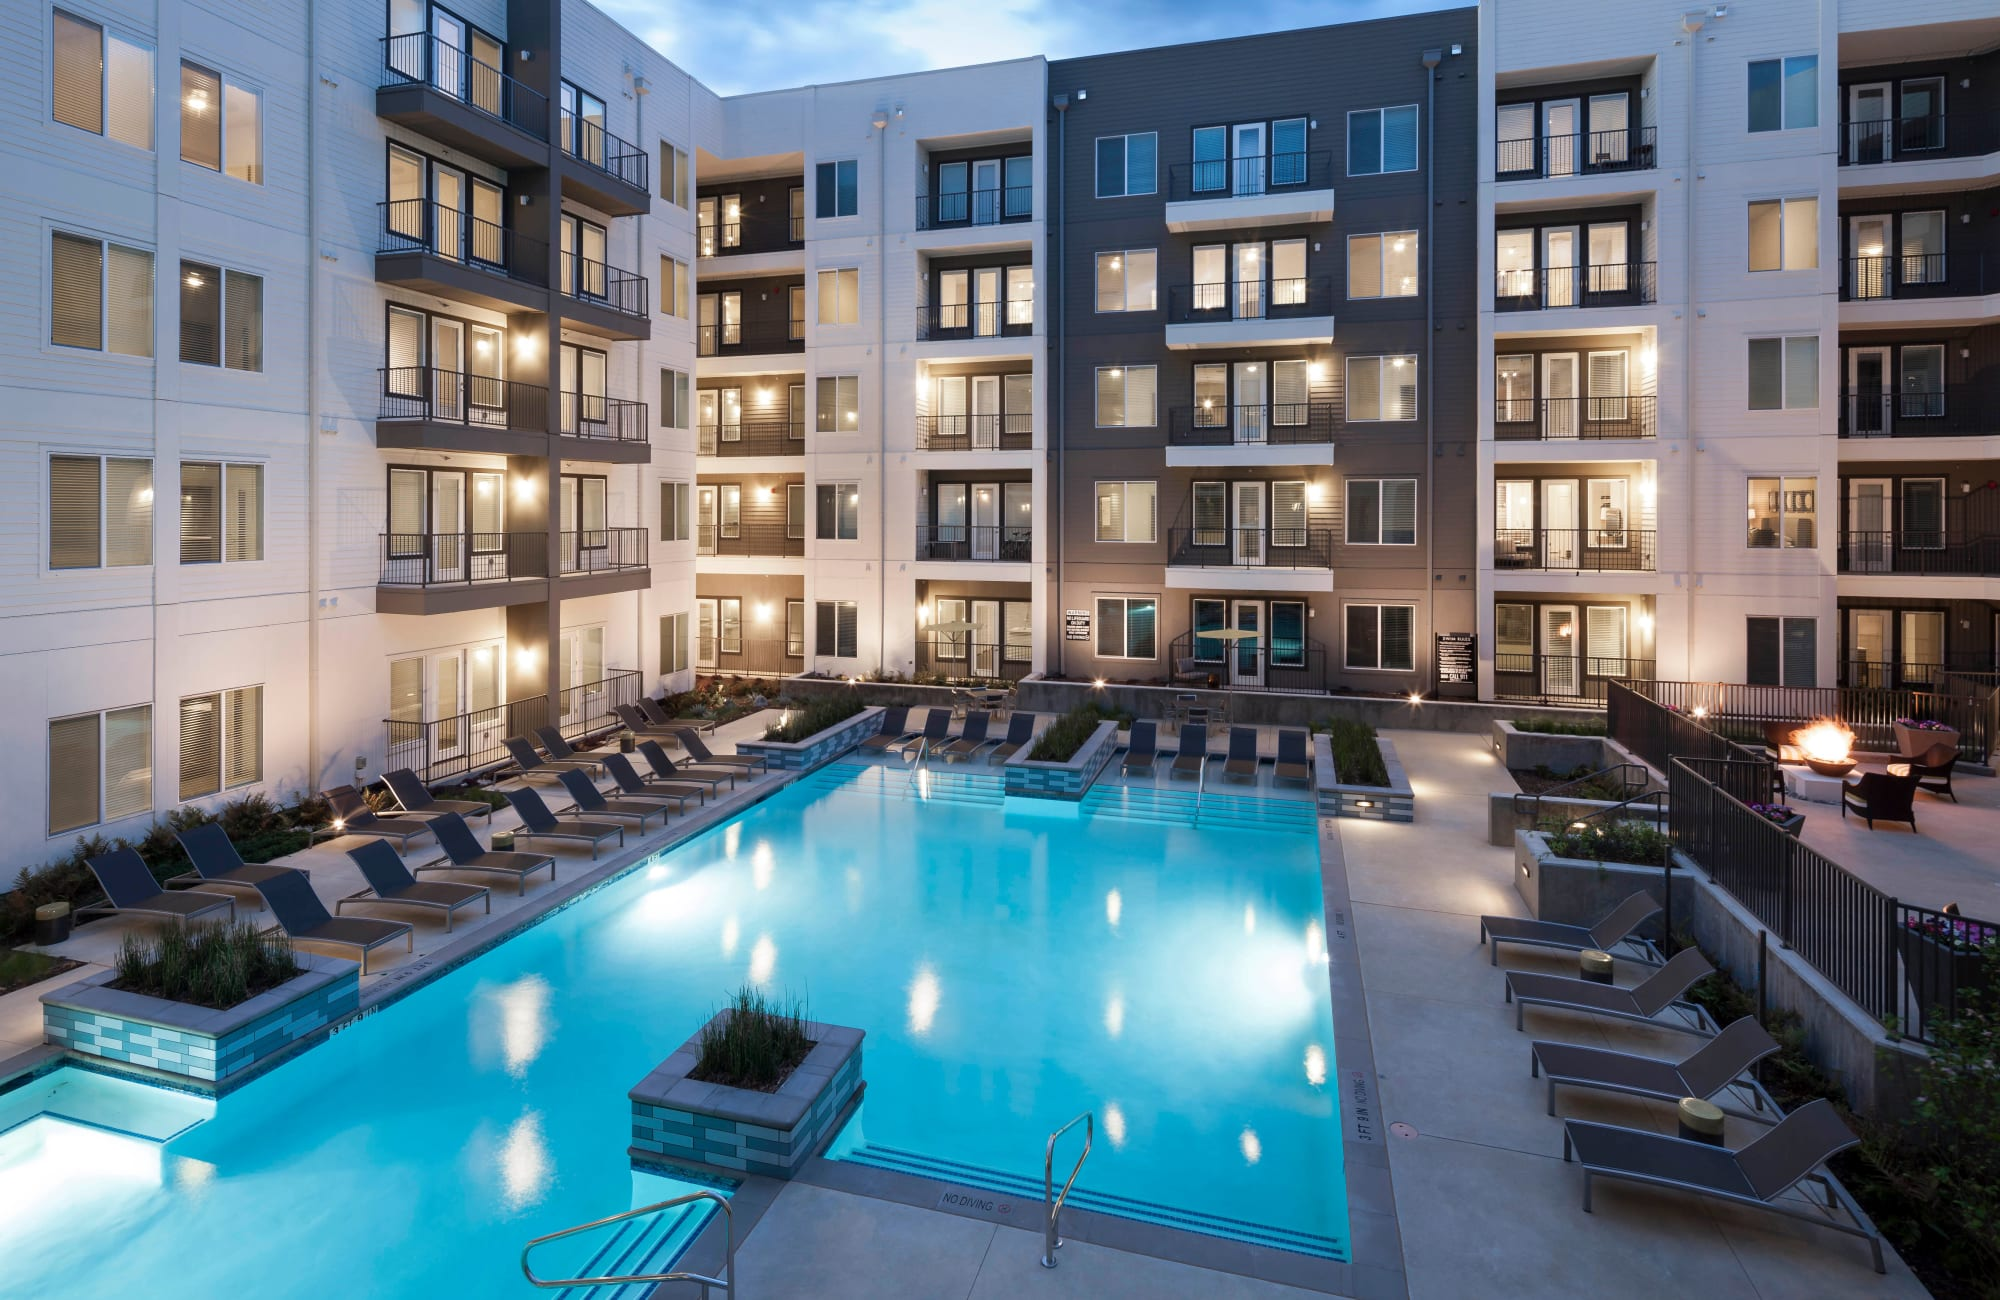 Apartments at Axis 110 in Richardson, Texas